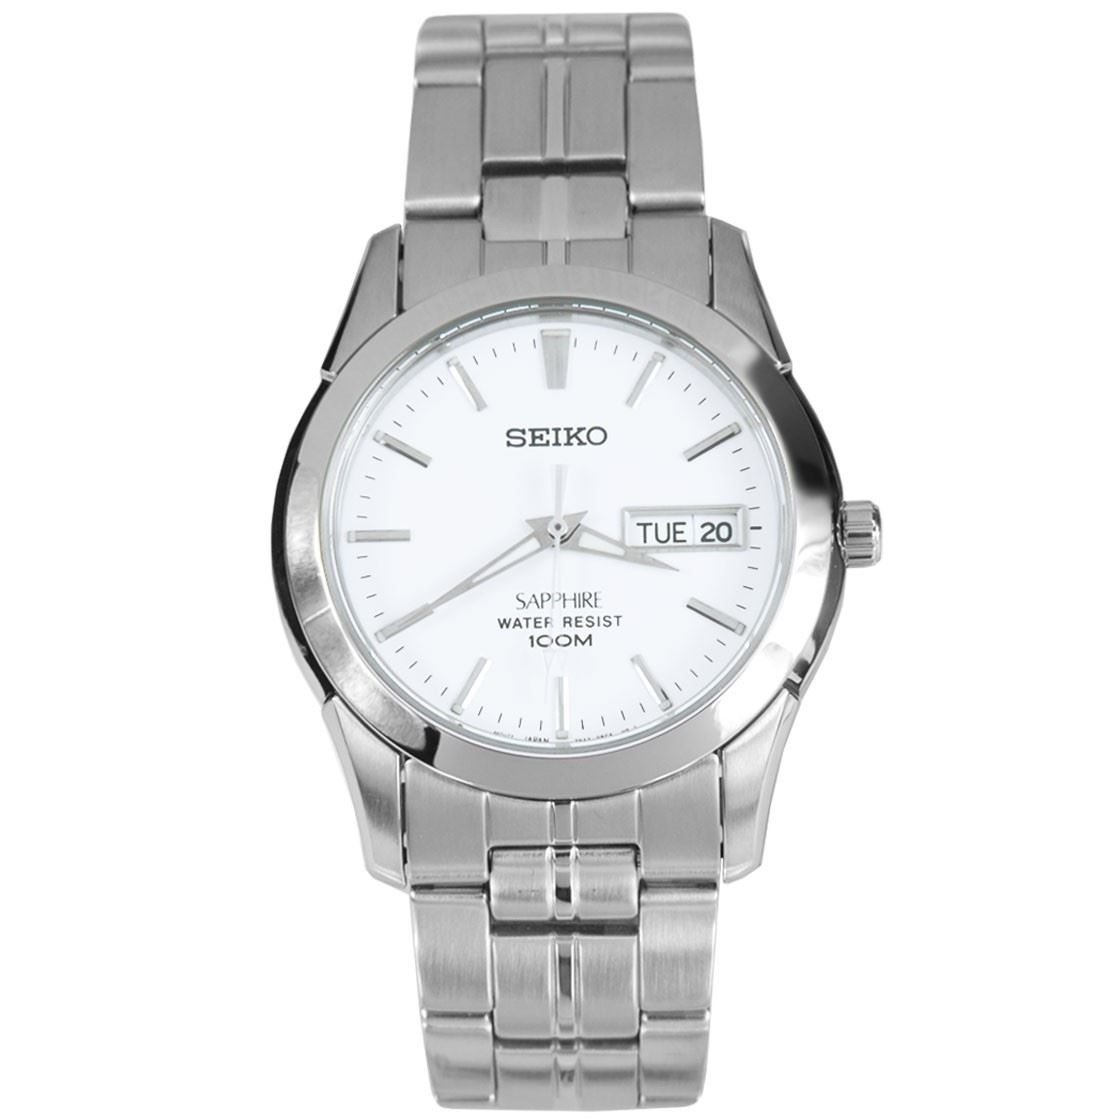 Seiko Quartz Sapphire Crystal Analog Mens Watch Sgg713p1. Roman Numerals Bracelet. Gel Bracelet. Tin Necklace. Fashion Jewelry Stores. Emeral Rings. Wide Band Diamond Rings. Blood Red Gemstone. Austin Watches